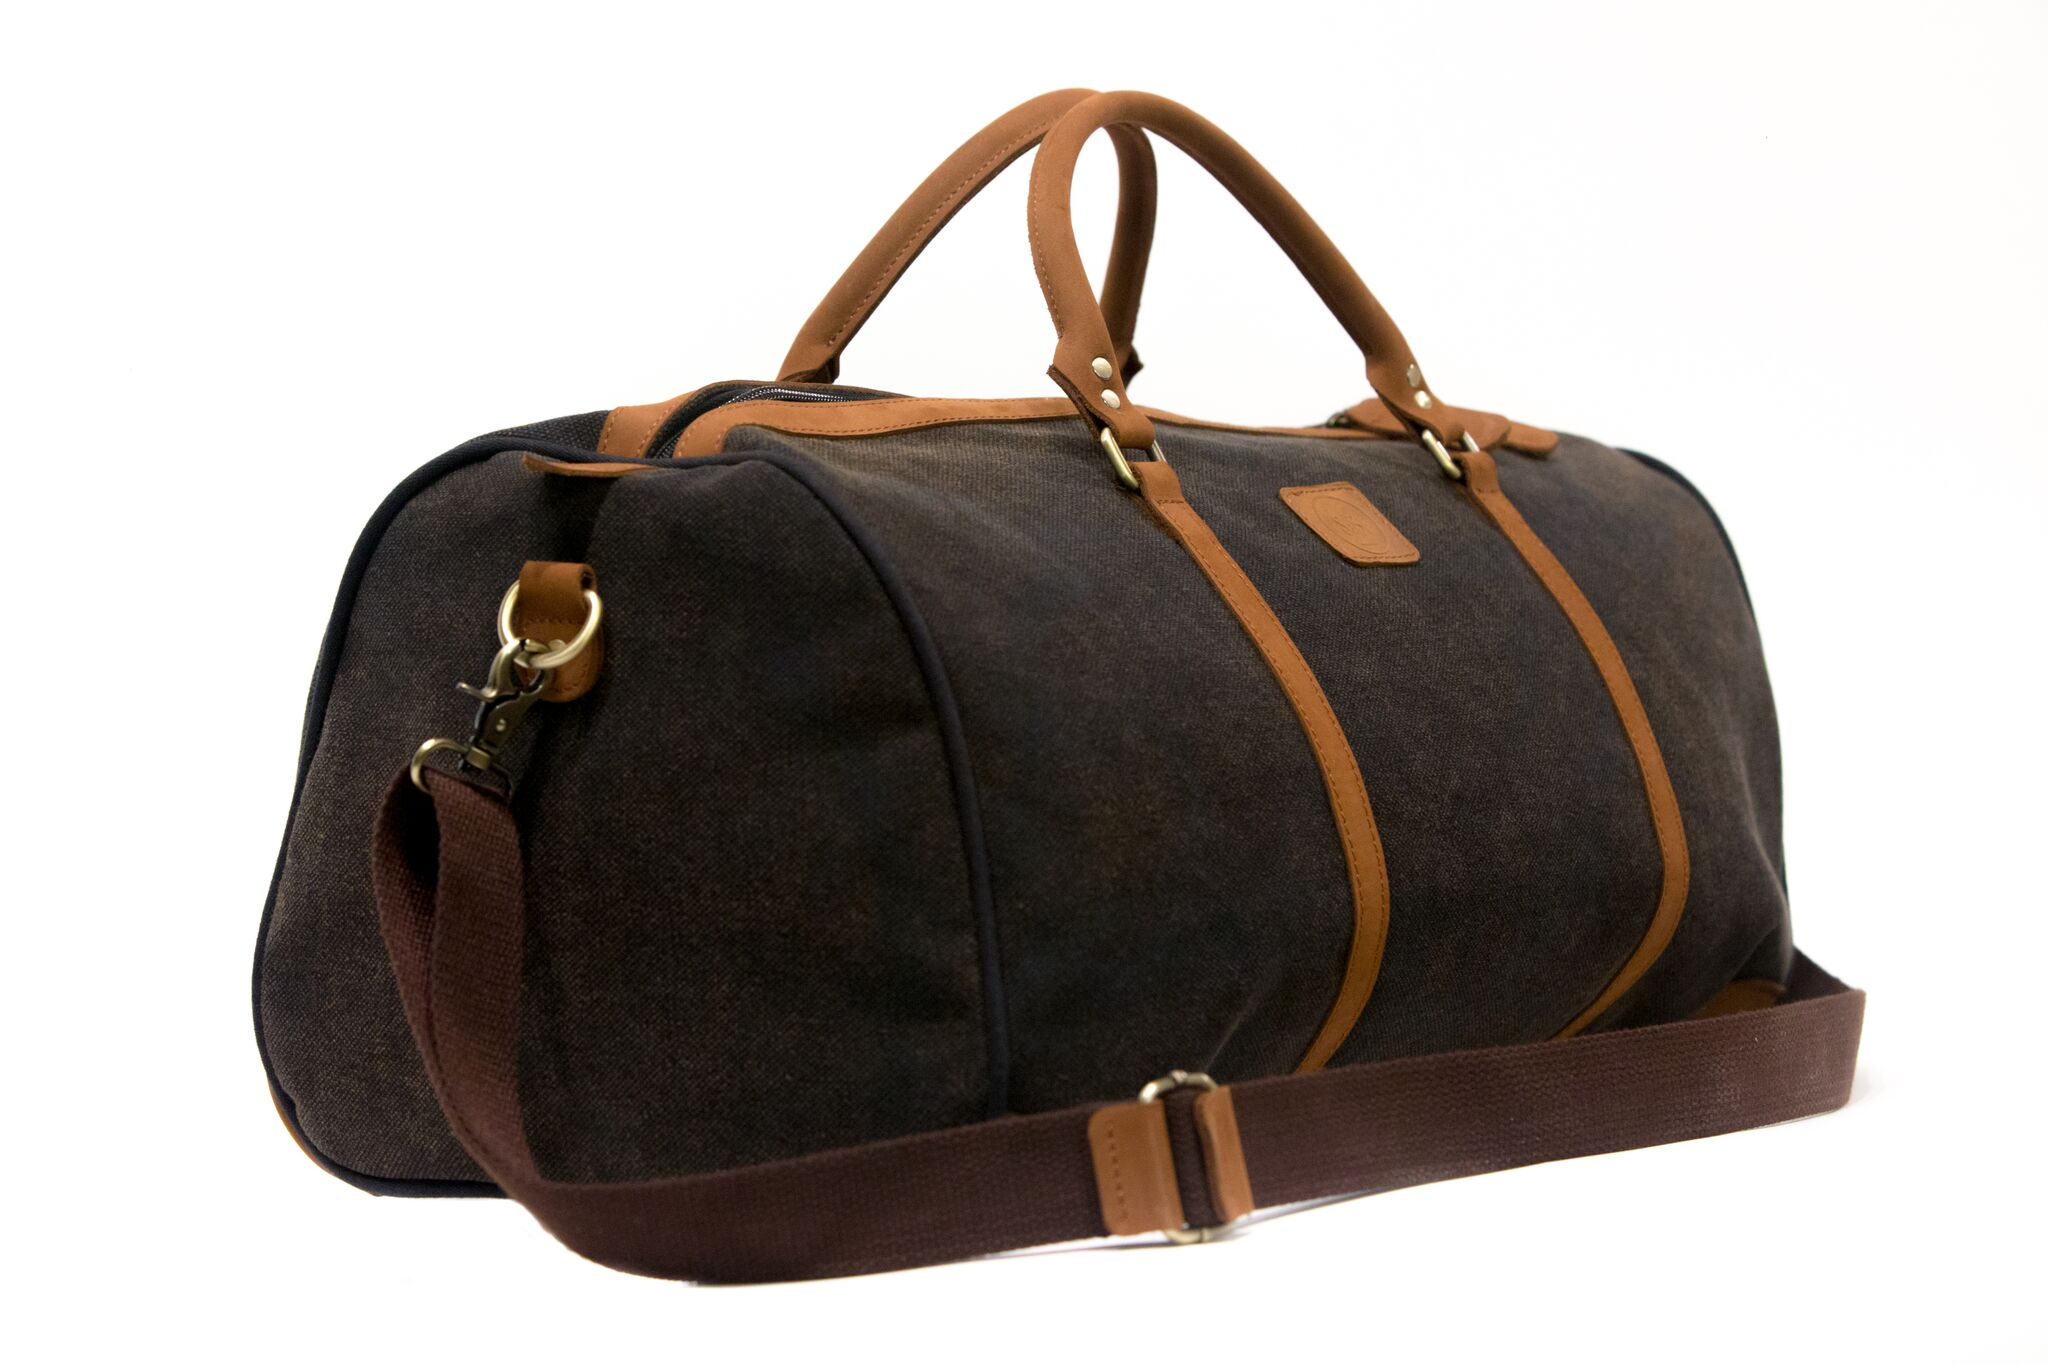 Sabi Harlow Coffee Travel Bag Shop Outlet Canada